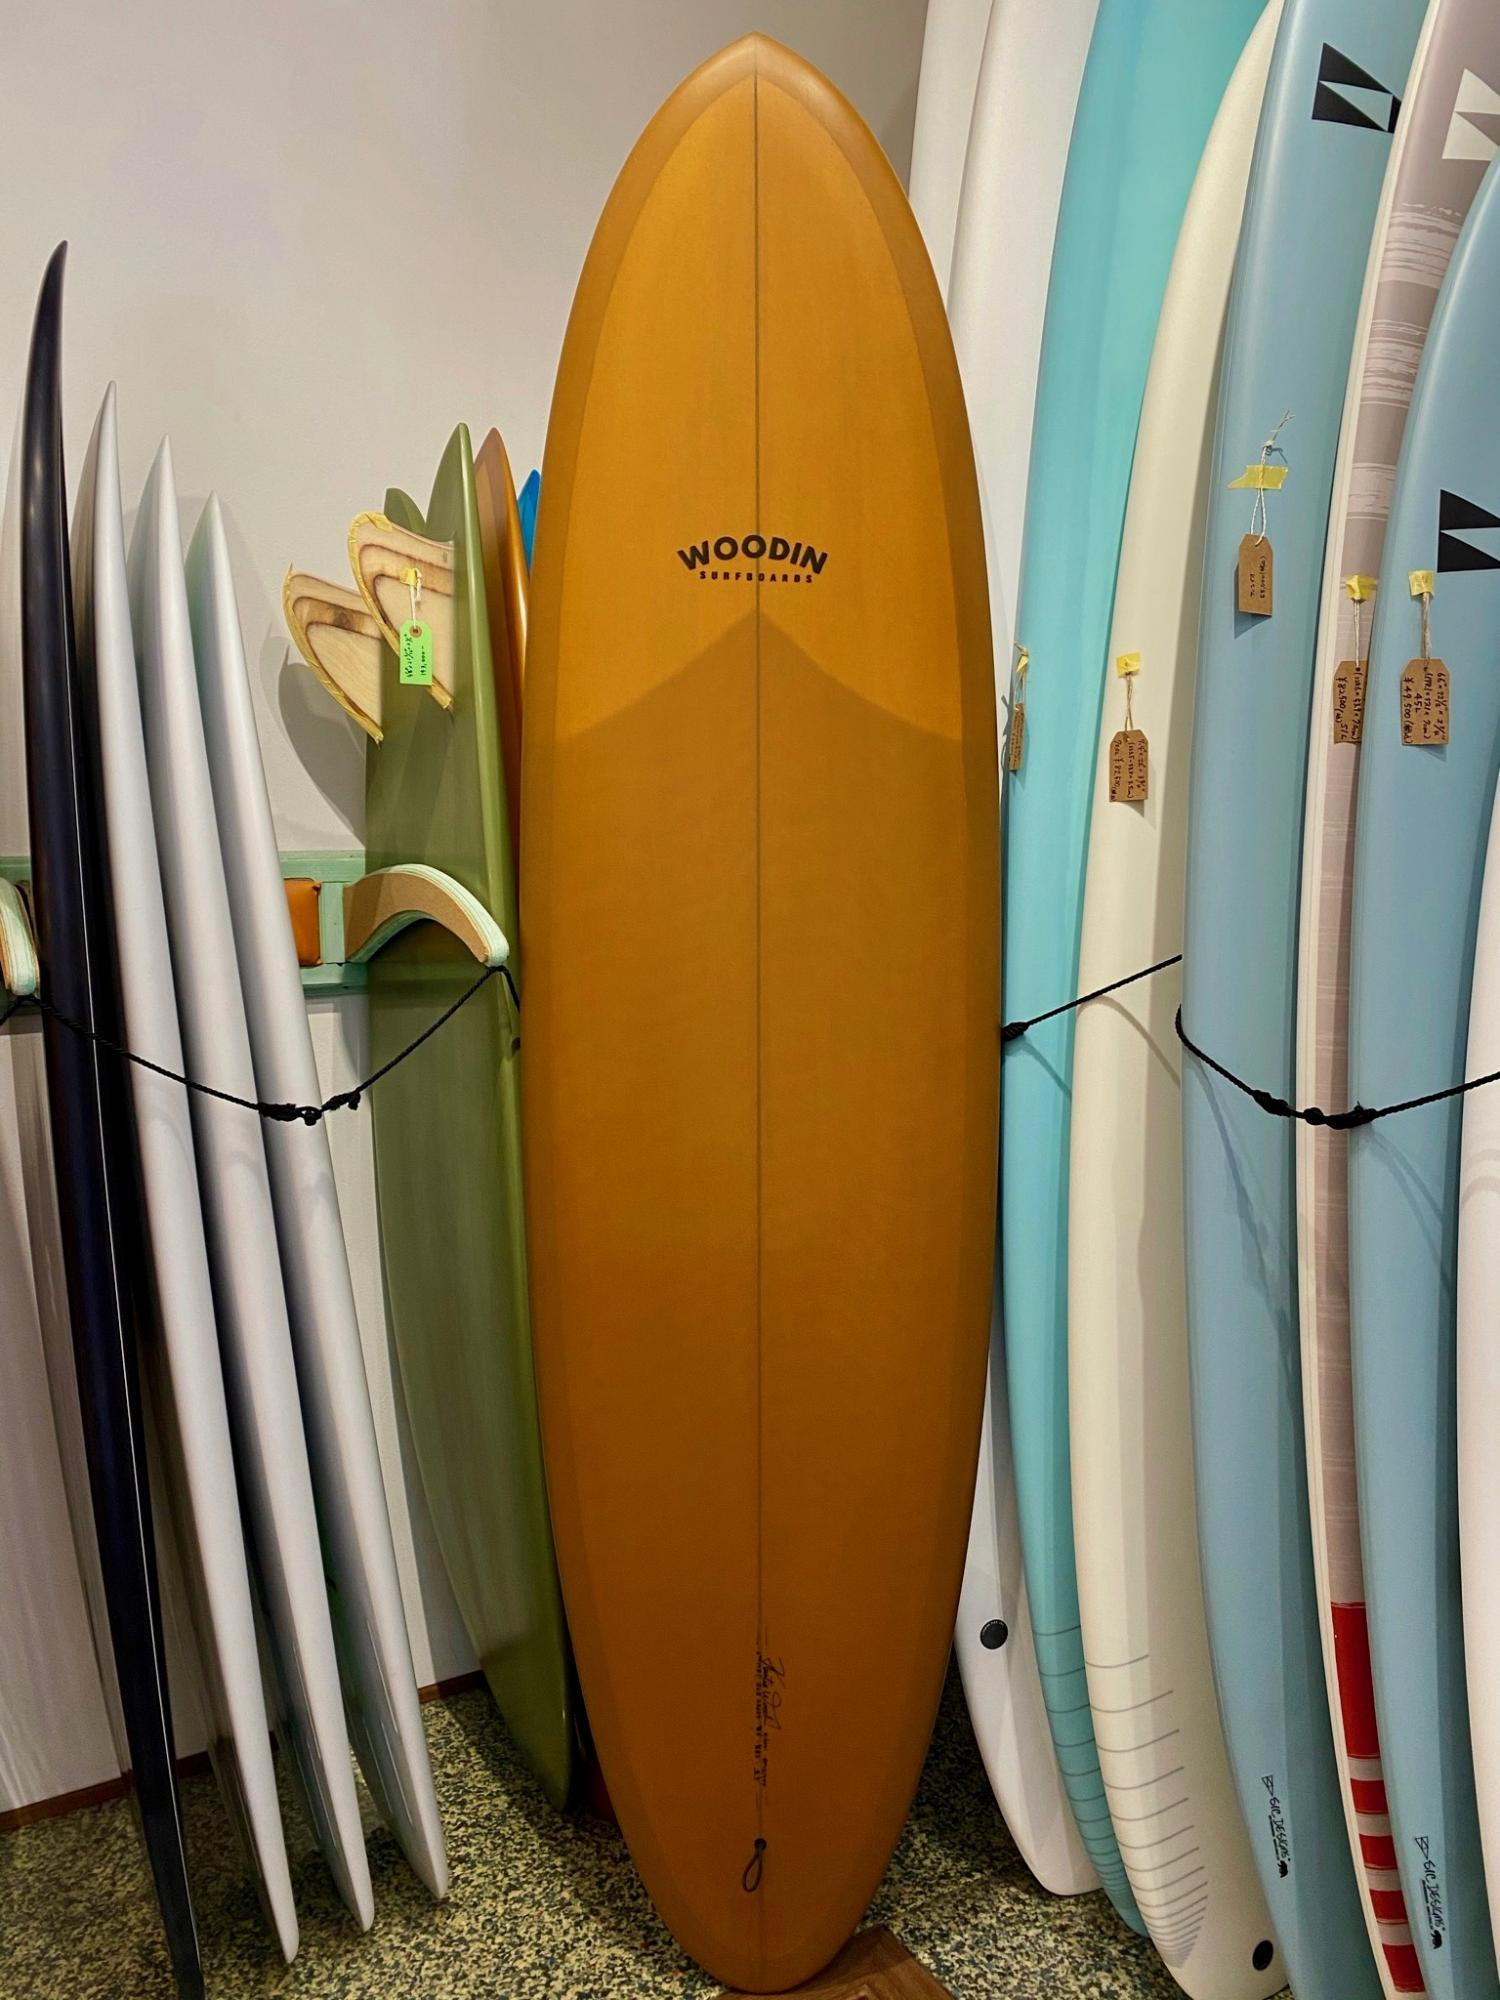 Gypsy Eye model 6.8 WOODIN SURFBOARDS